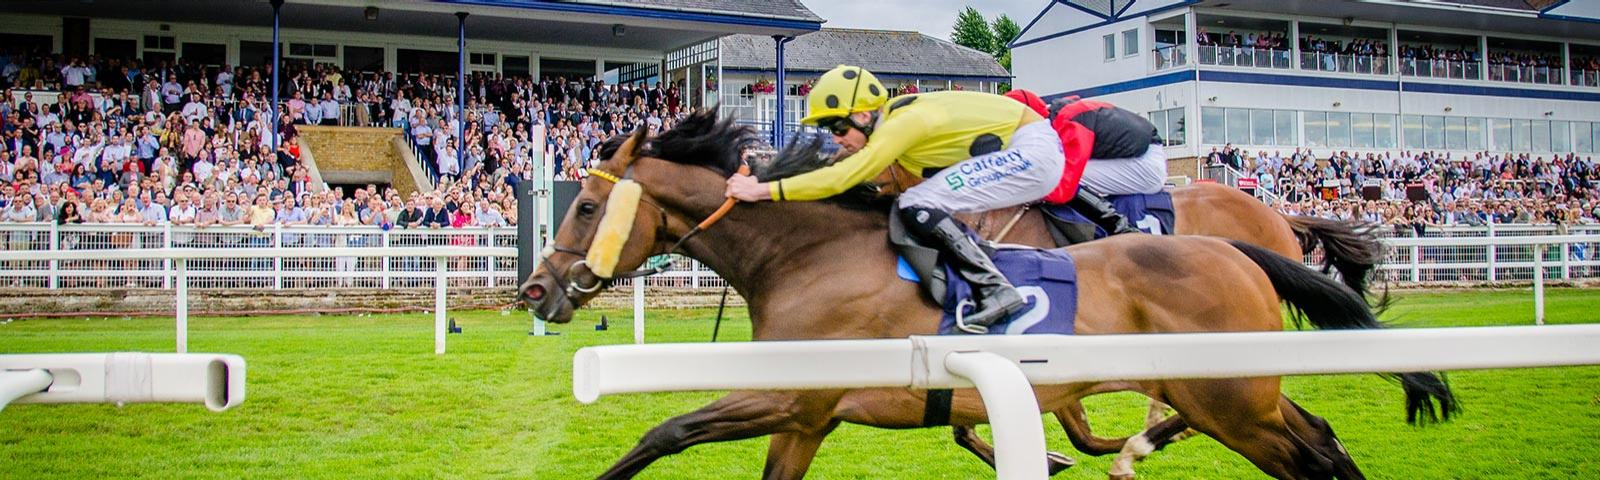 Horses racing with large Windsor Racecourse crowds behind